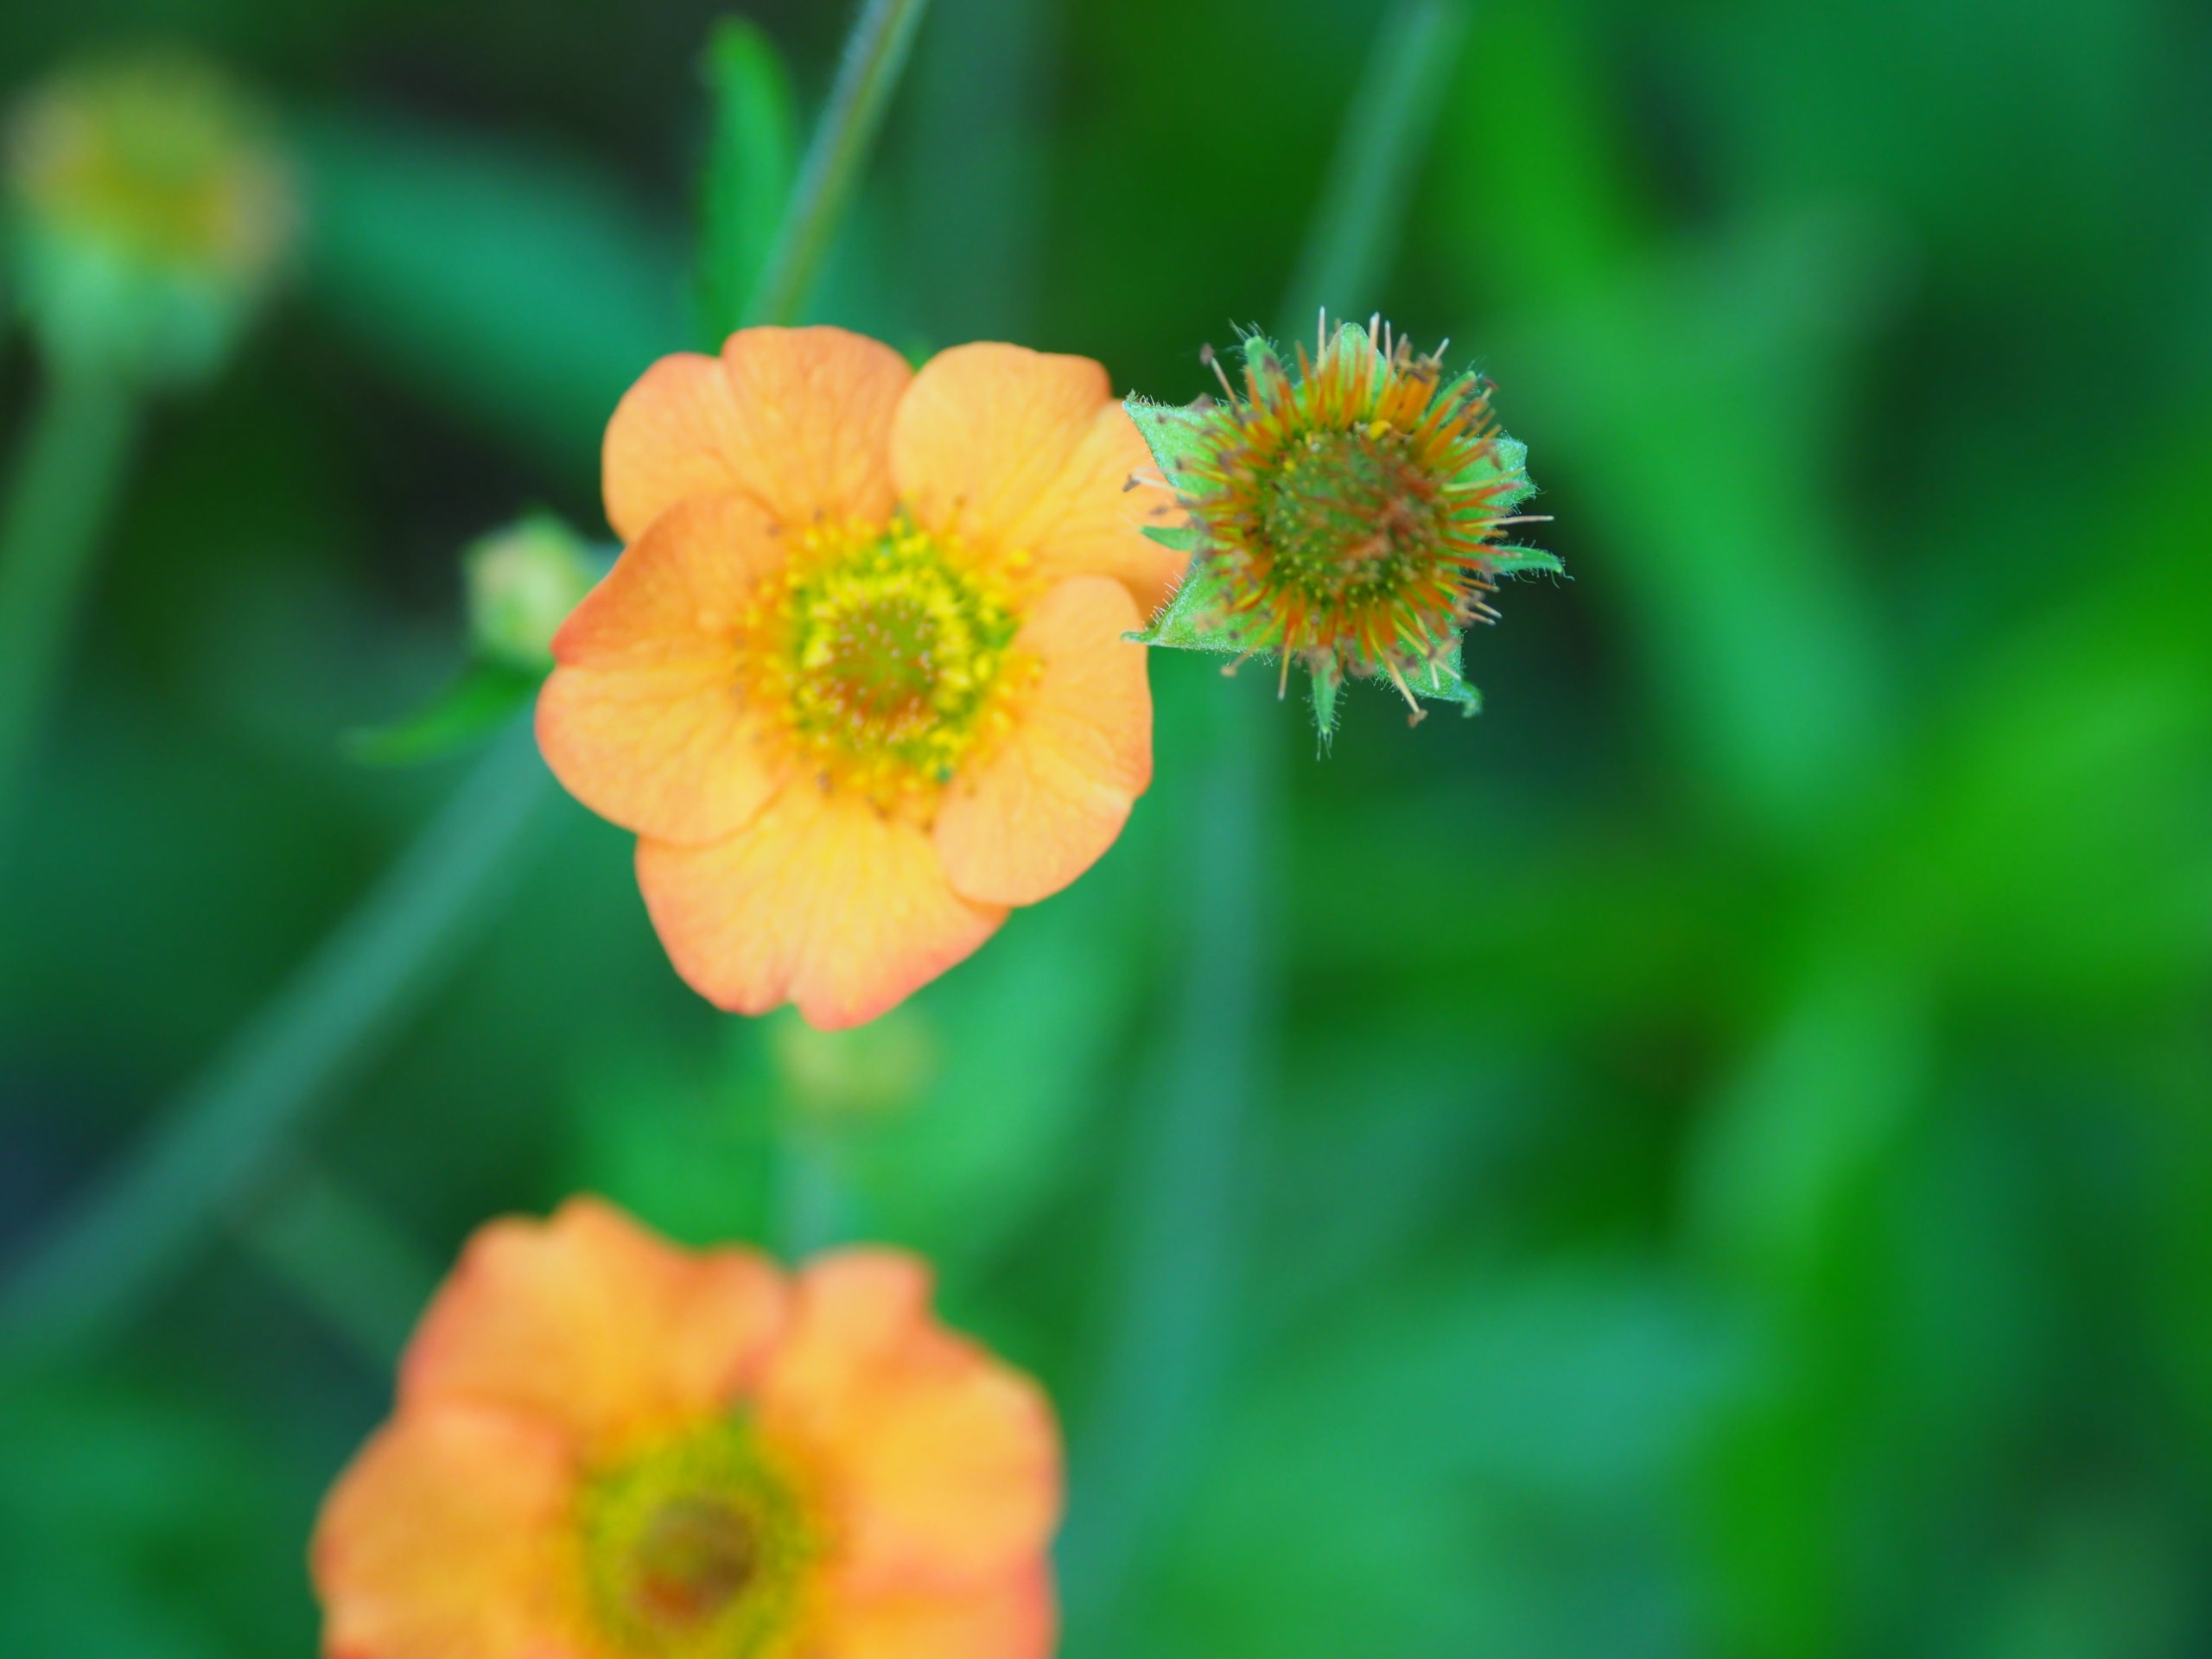 The flower of Geum